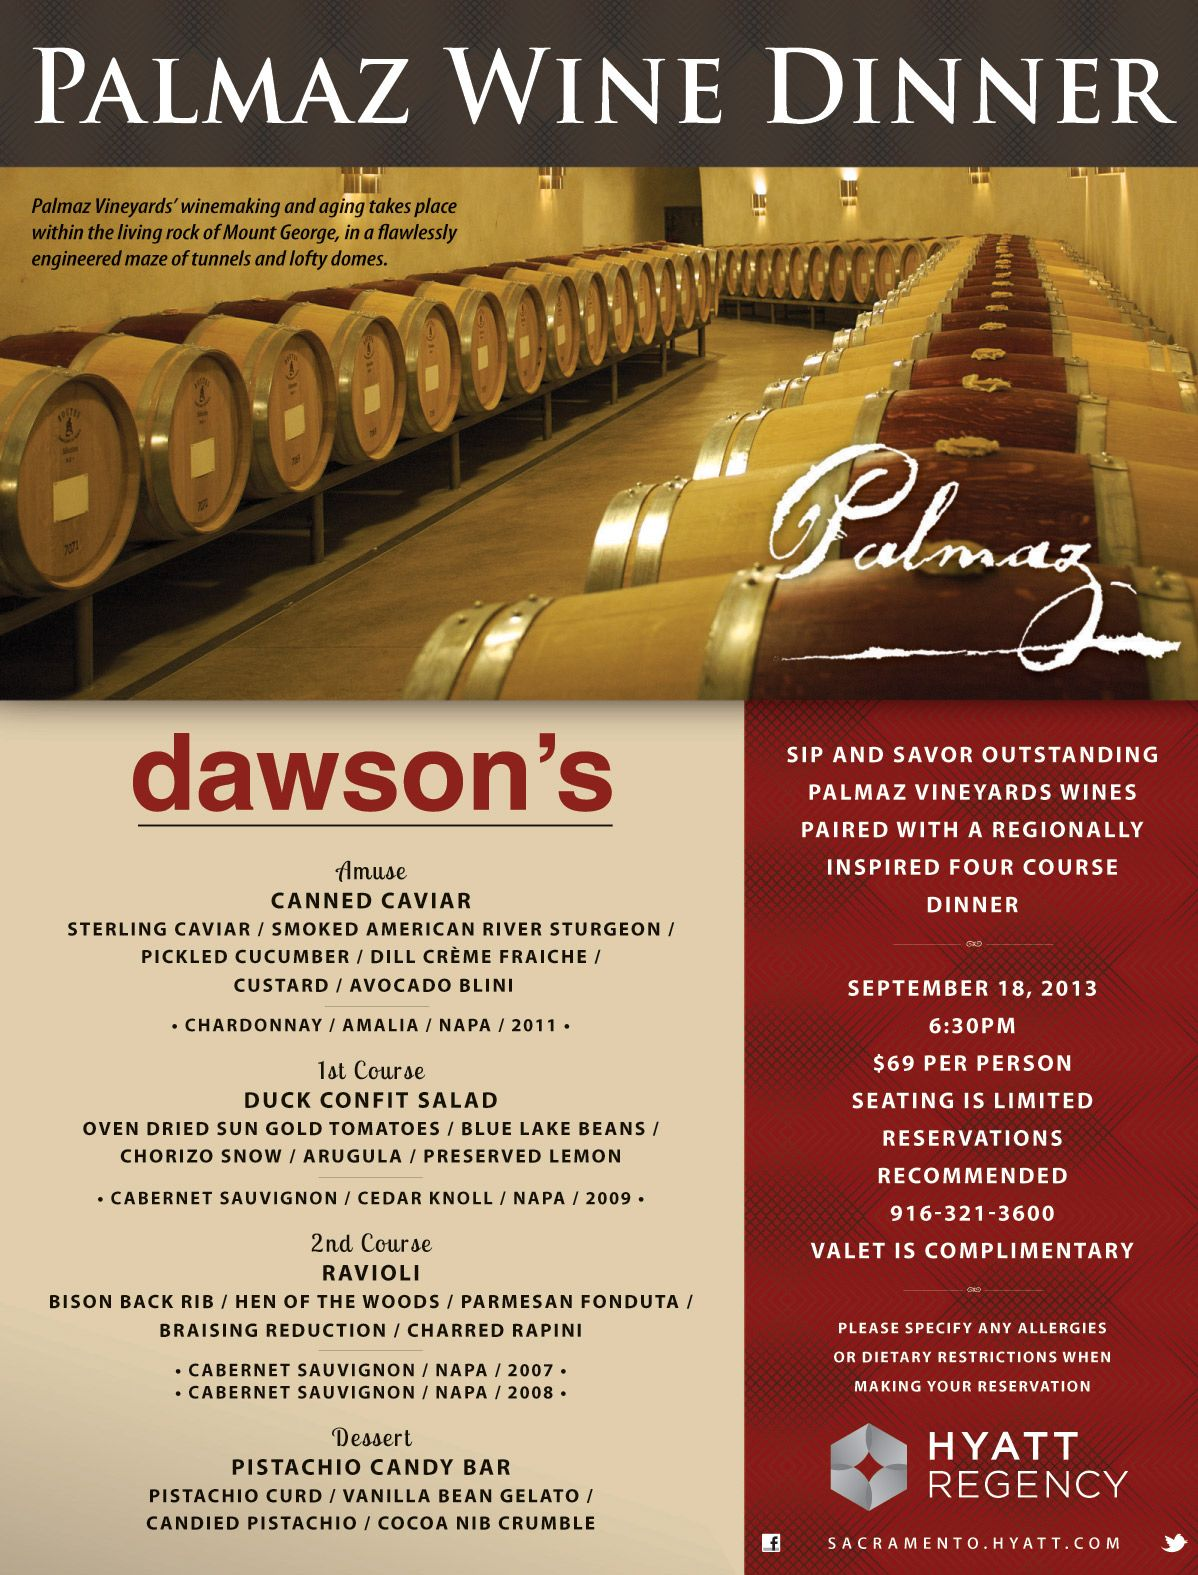 Sip And Savor Outstanding Palmaz Vineyard Wines Paired With A Regionally Inspired Four Course Dinner Seating Is Limited Wine Dinner Wine Pairing Wine And Dine